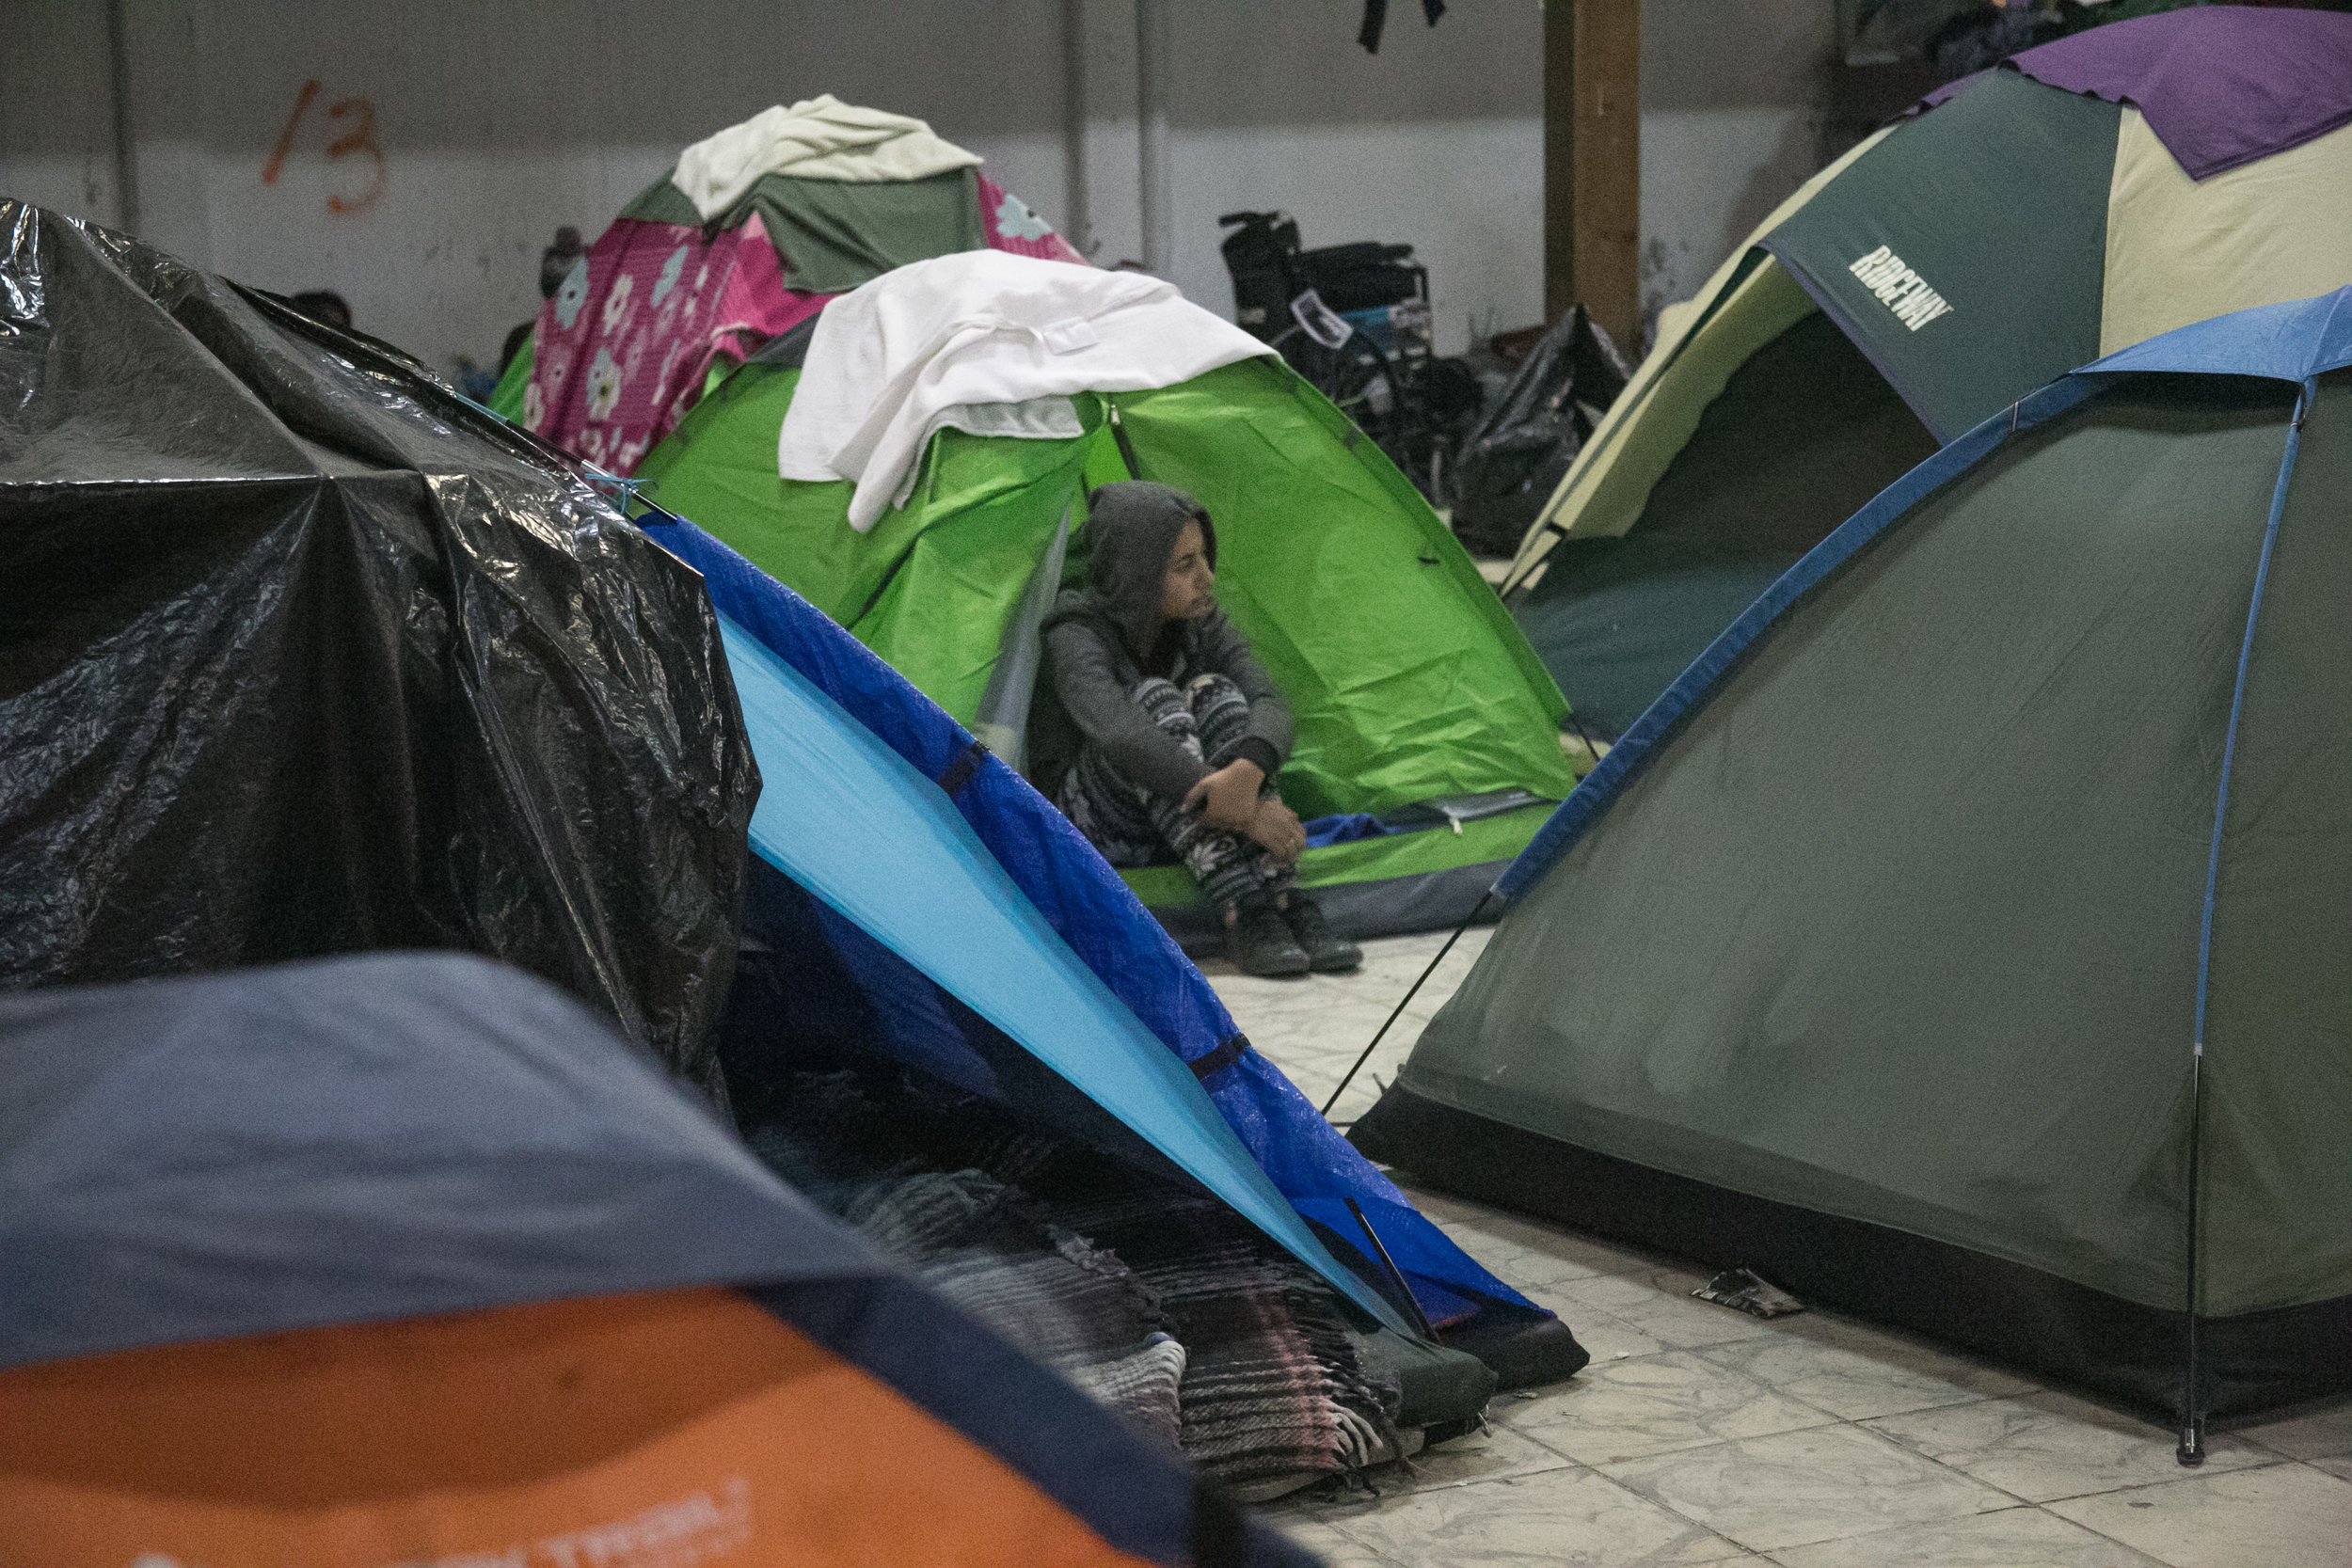 A child sits amidst the hundreds of tents packed into the Barretal compound on the outskirts of Tijuana, Mexico. The Mexican government relocated over 2,000 refugees to this facility after the first camp in Central Tijuana was closed due to intense rain, flooding, and inhumane conditions. This sheltered part of the facility houses around 500-600 woman and children - while the remaining 1,500 single men sleep in donated tents in a gated area just outside.